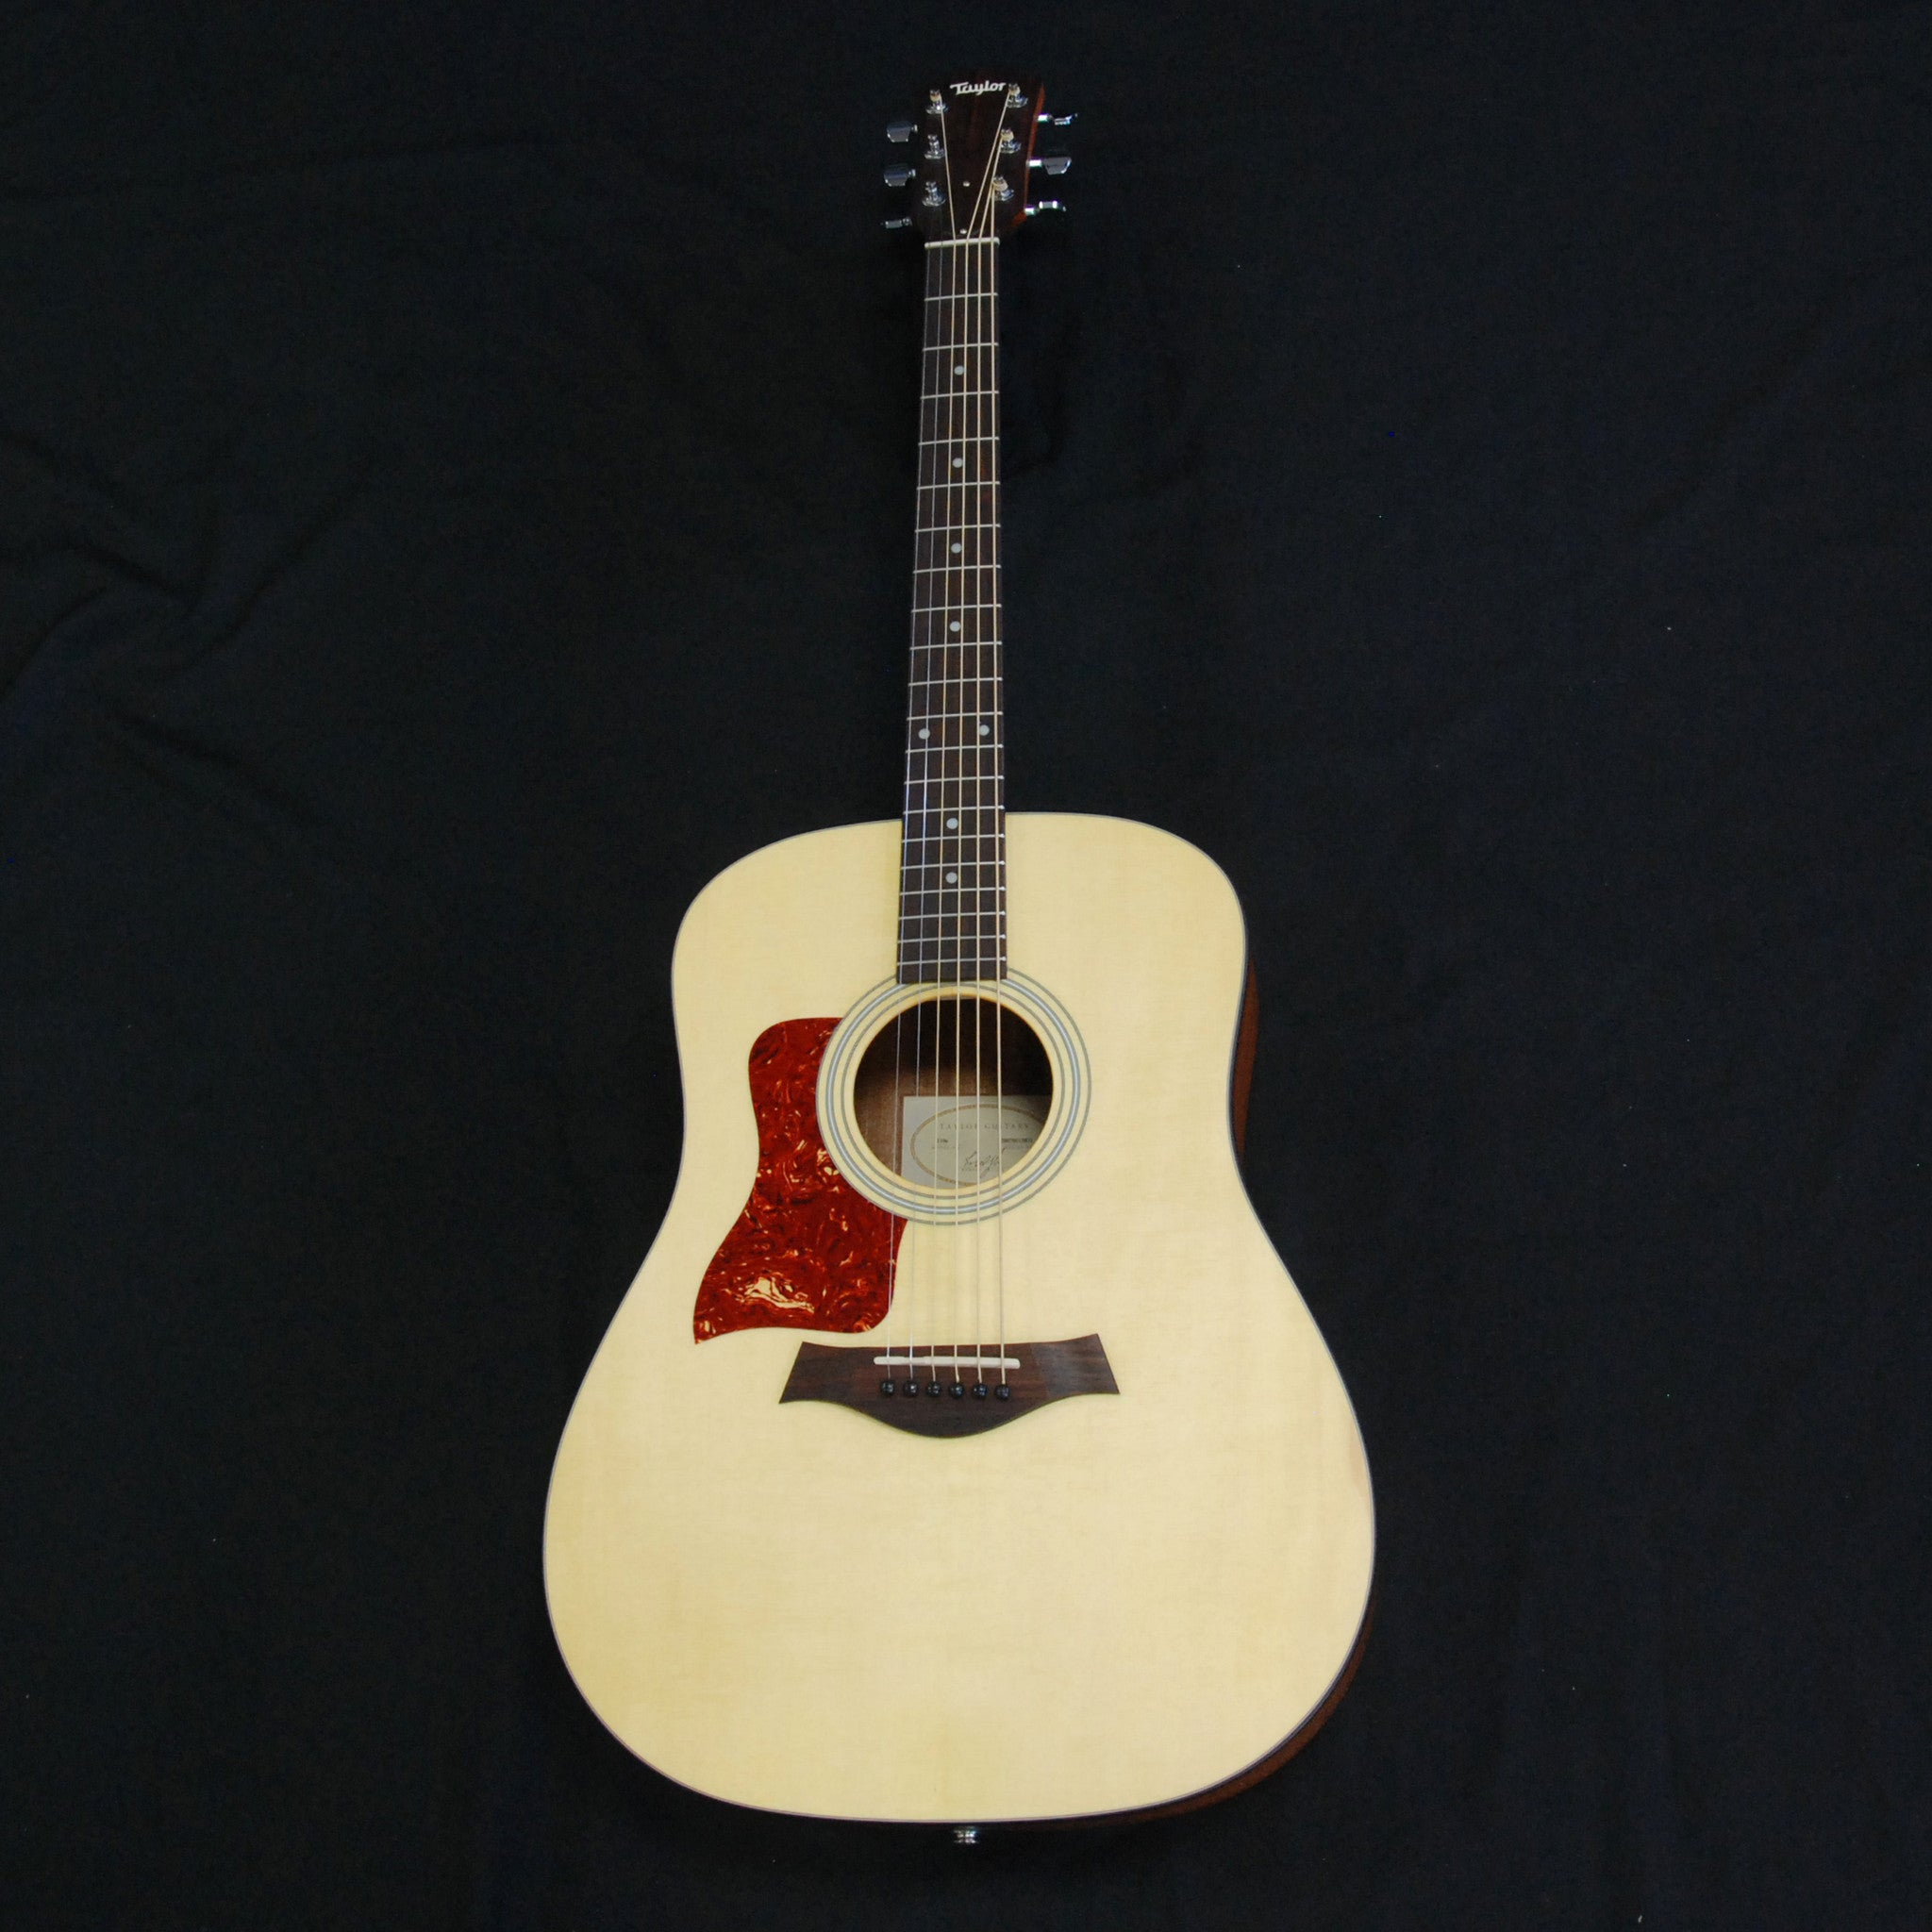 Shop online for Taylor 110e Left Hand Dreadnought Acoustic/Electric Guitar Natural today.  Now available for purchase from Midlothian Music of Orland Park, Illinois, USA